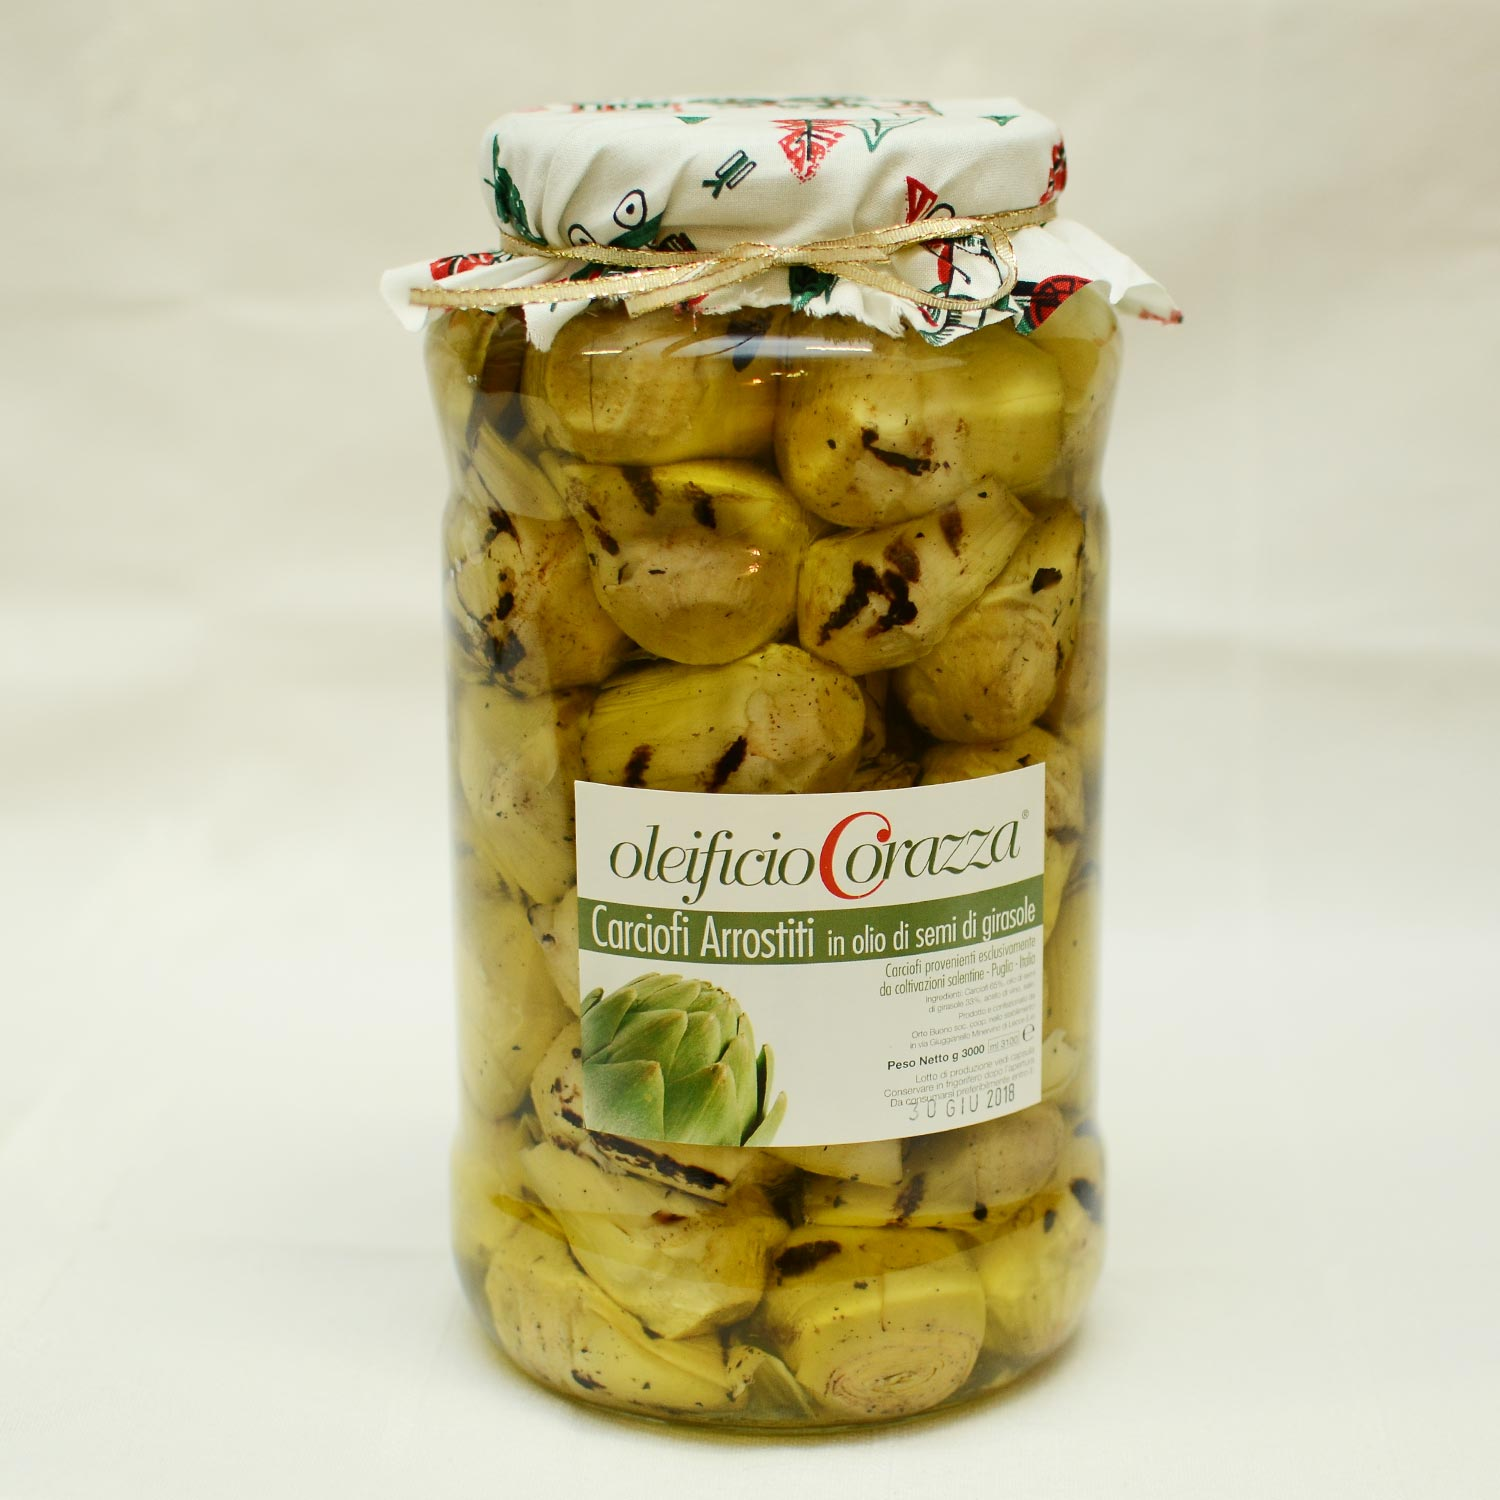 4 - Carciofi arrostiti in olio di semi - g 3000